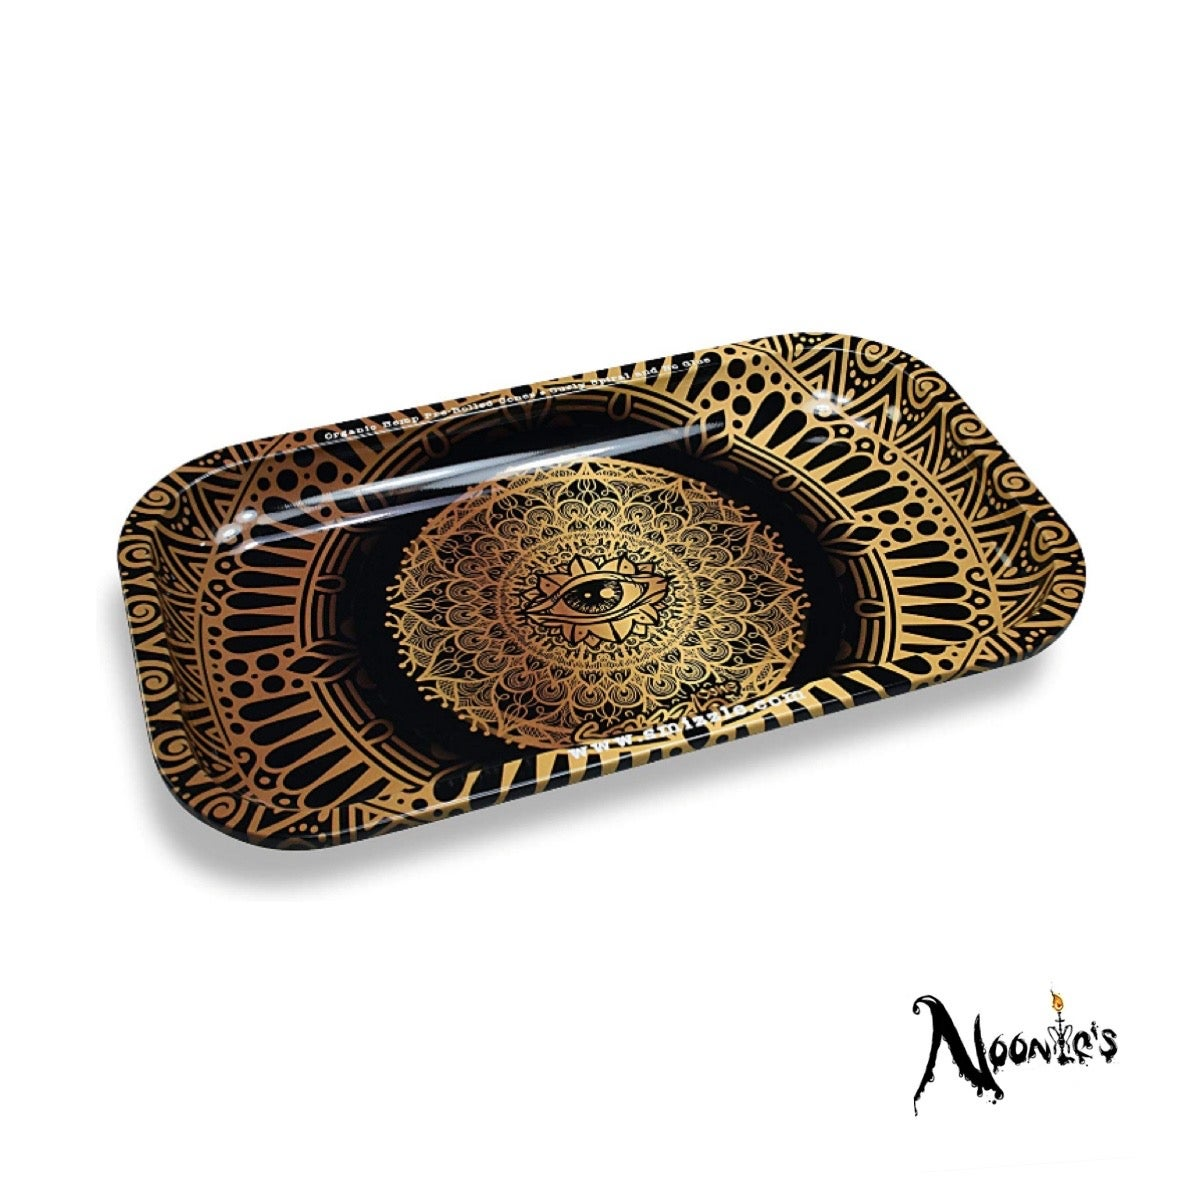 Image of Golden eye rolling tray